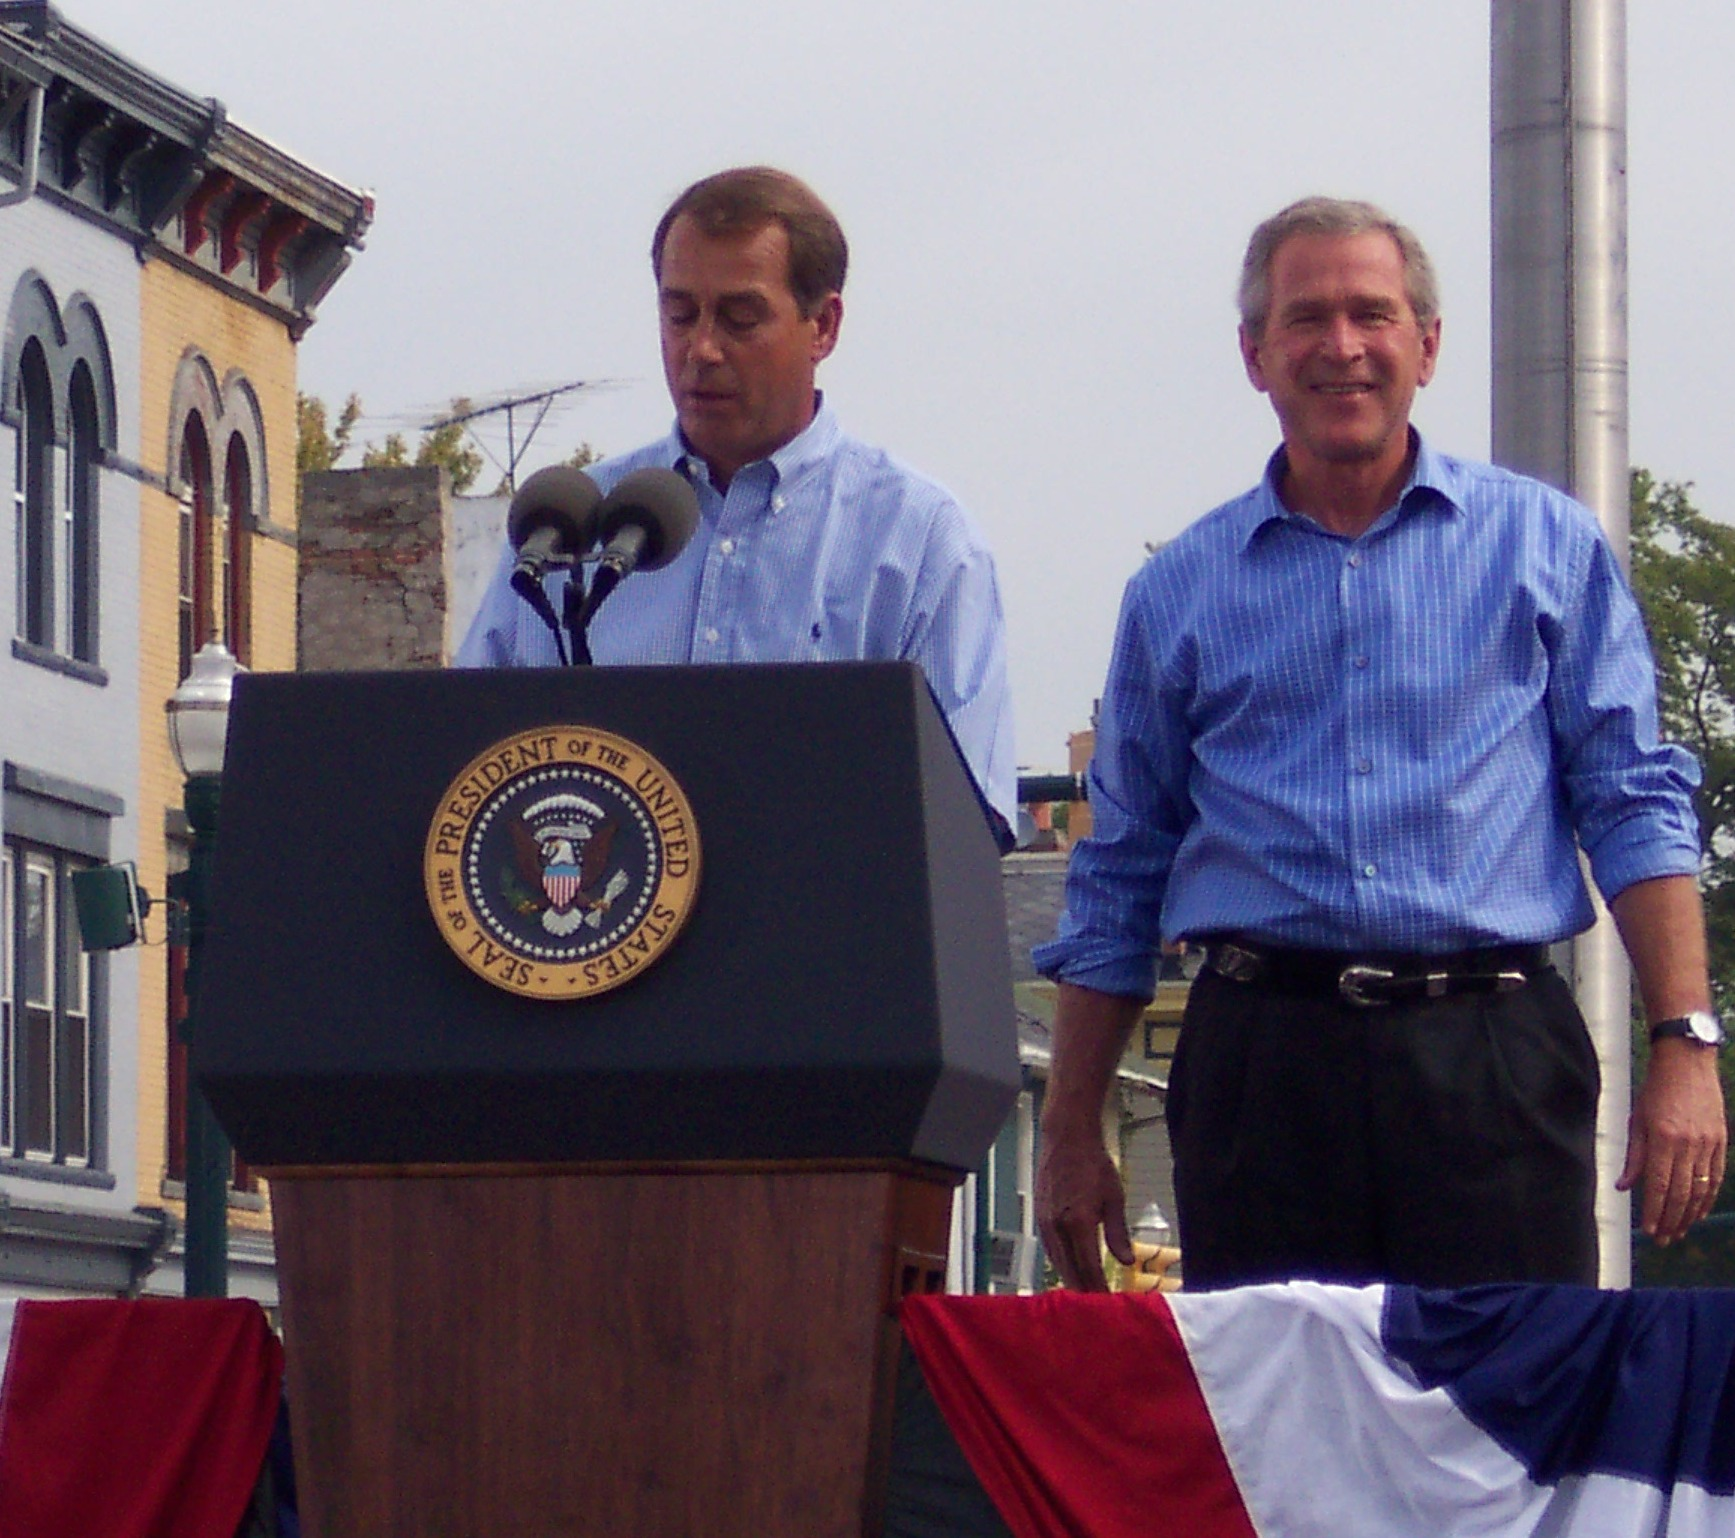 Boehner introducing then-president George W. Bush in Troy, Ohio in 2003.